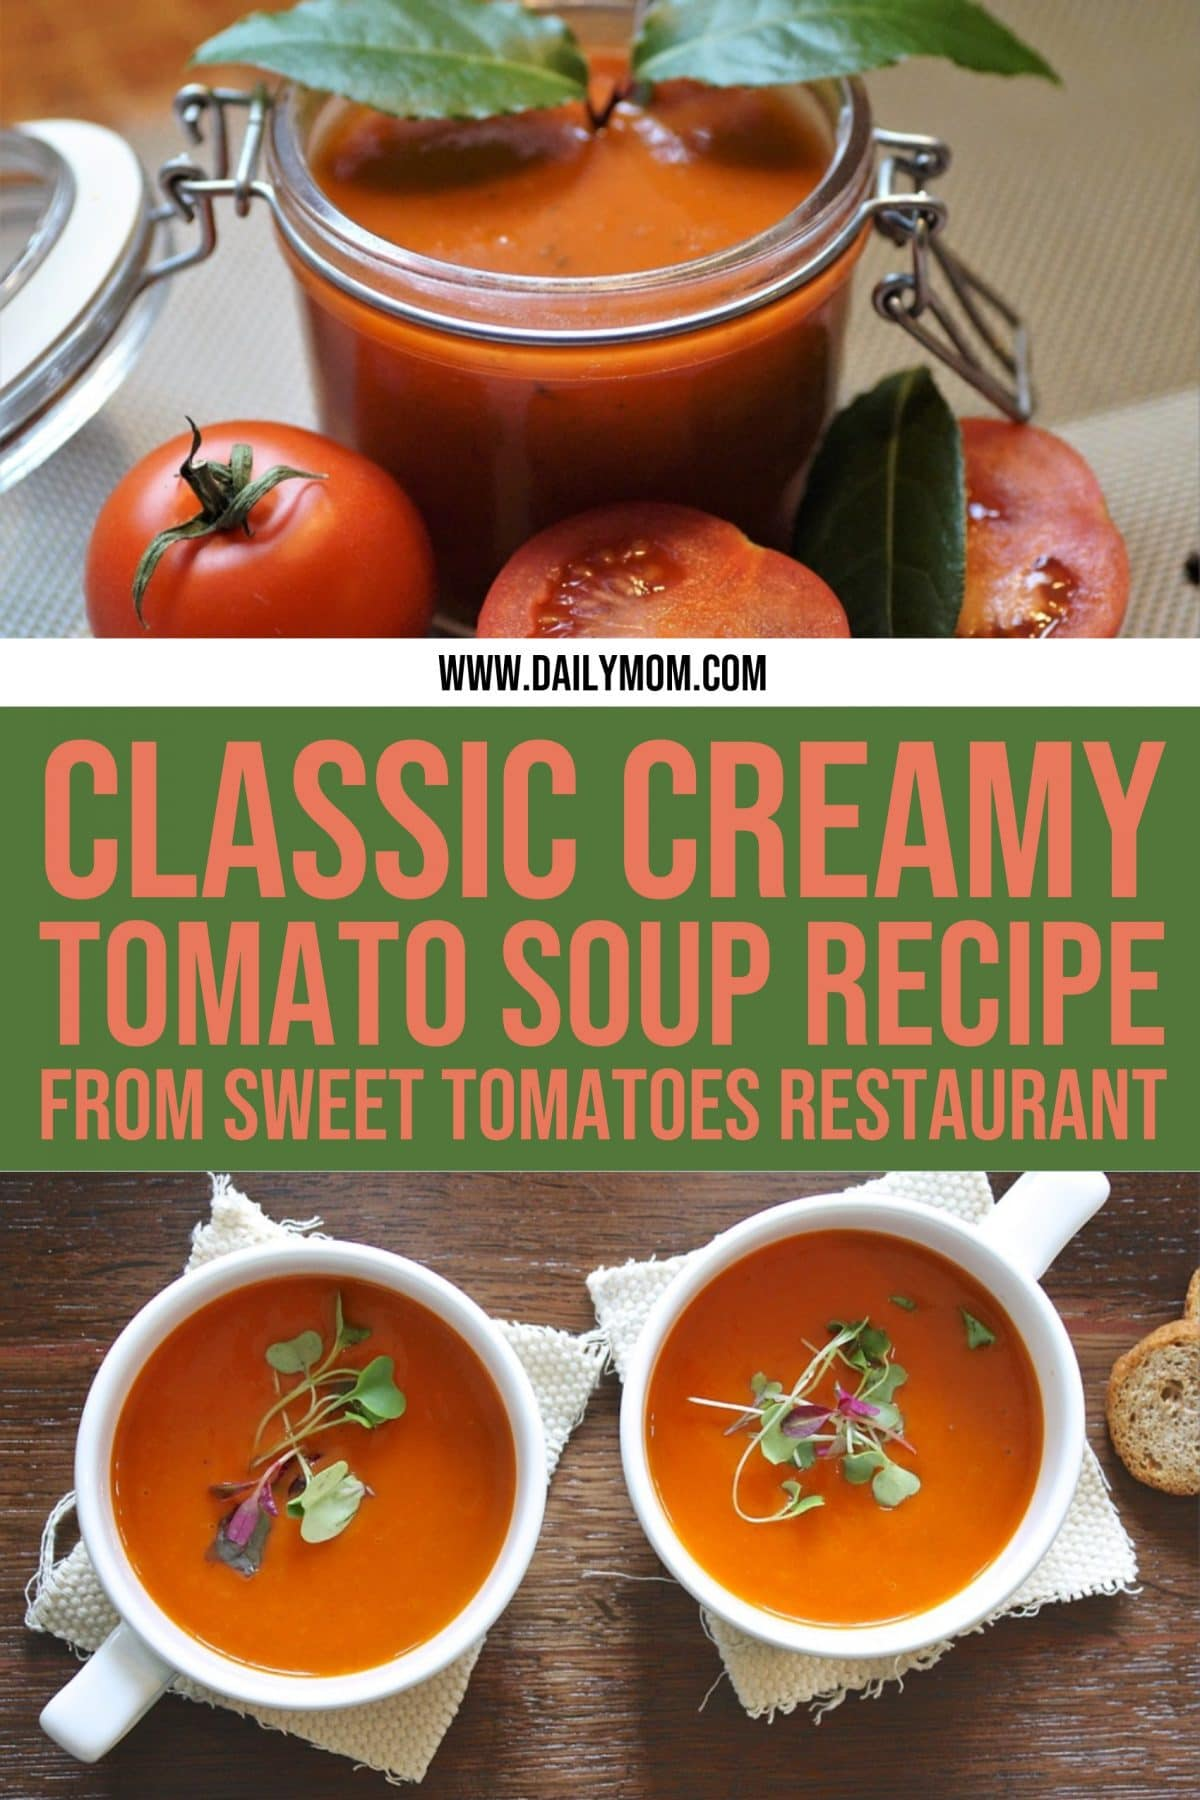 daily mom parent portal sweet tomatoes recipes